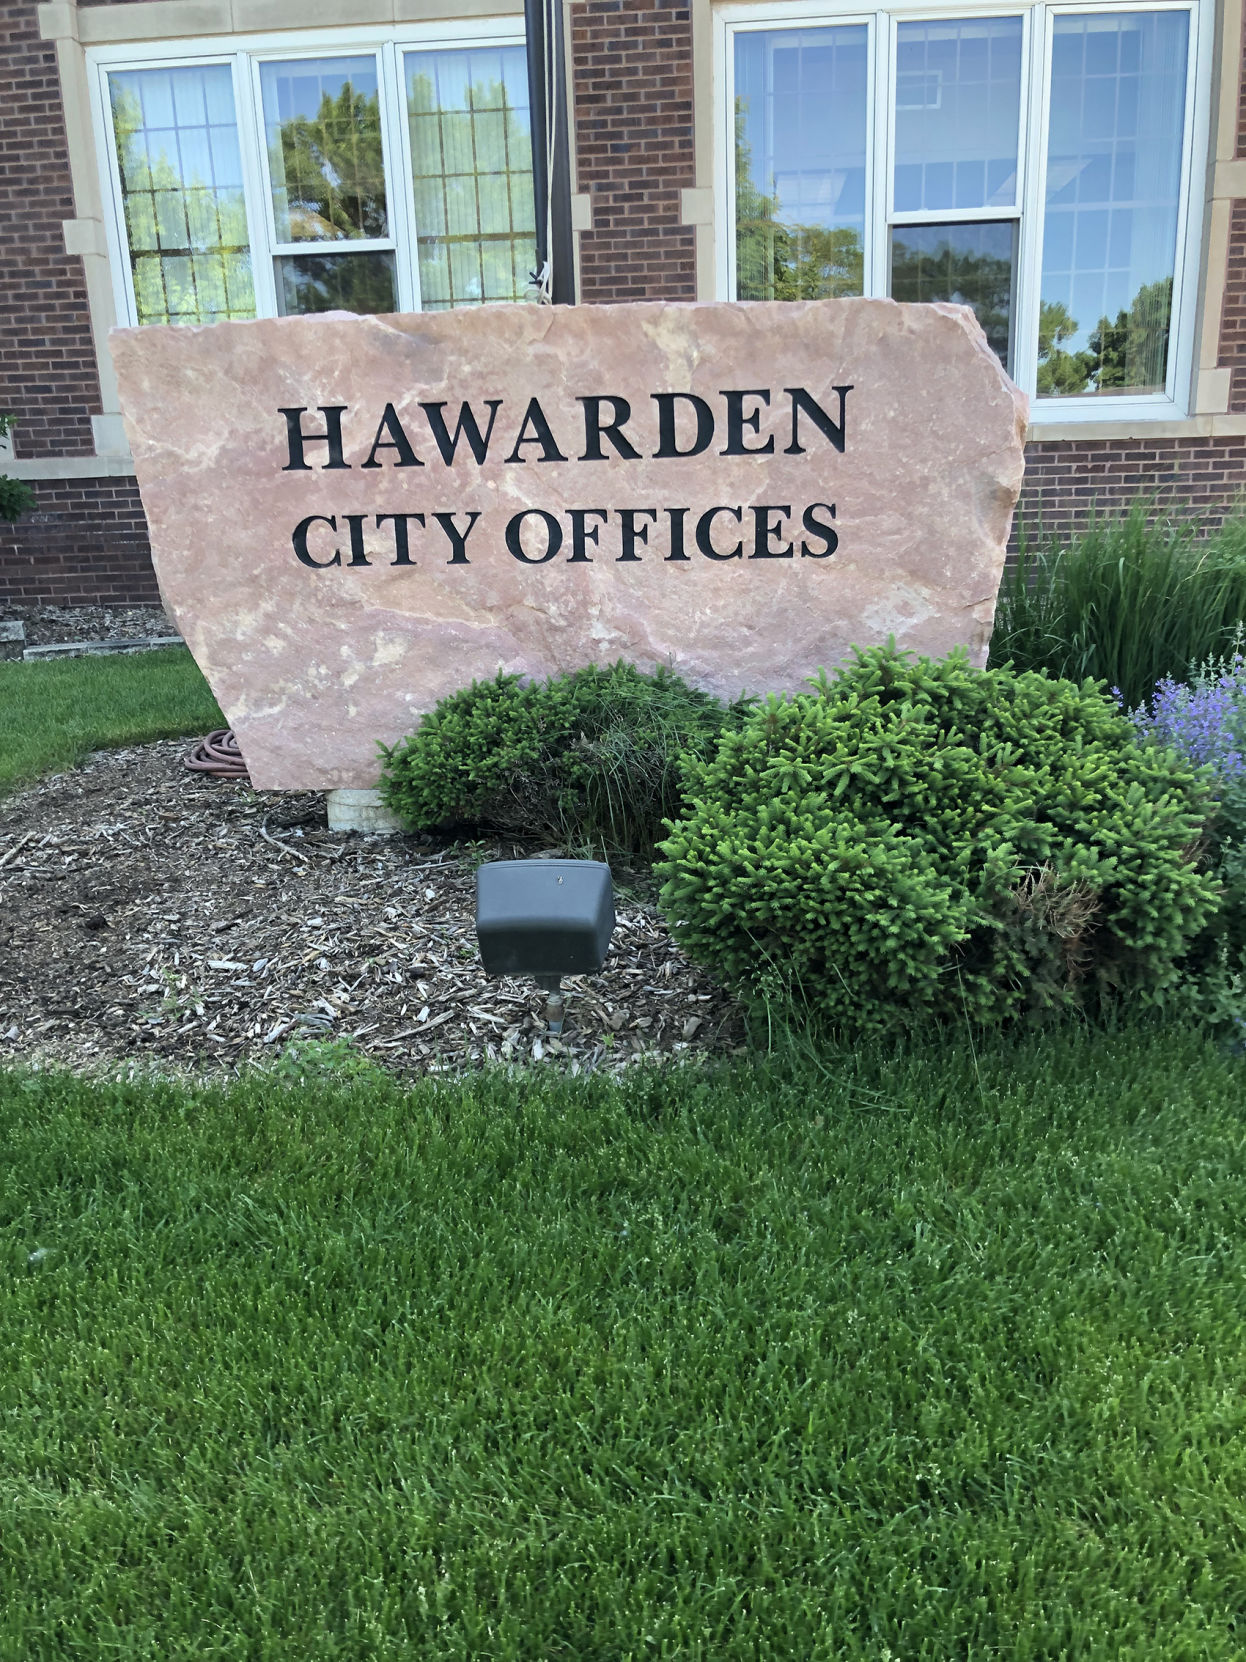 City of Hawarden hires Larry Cope